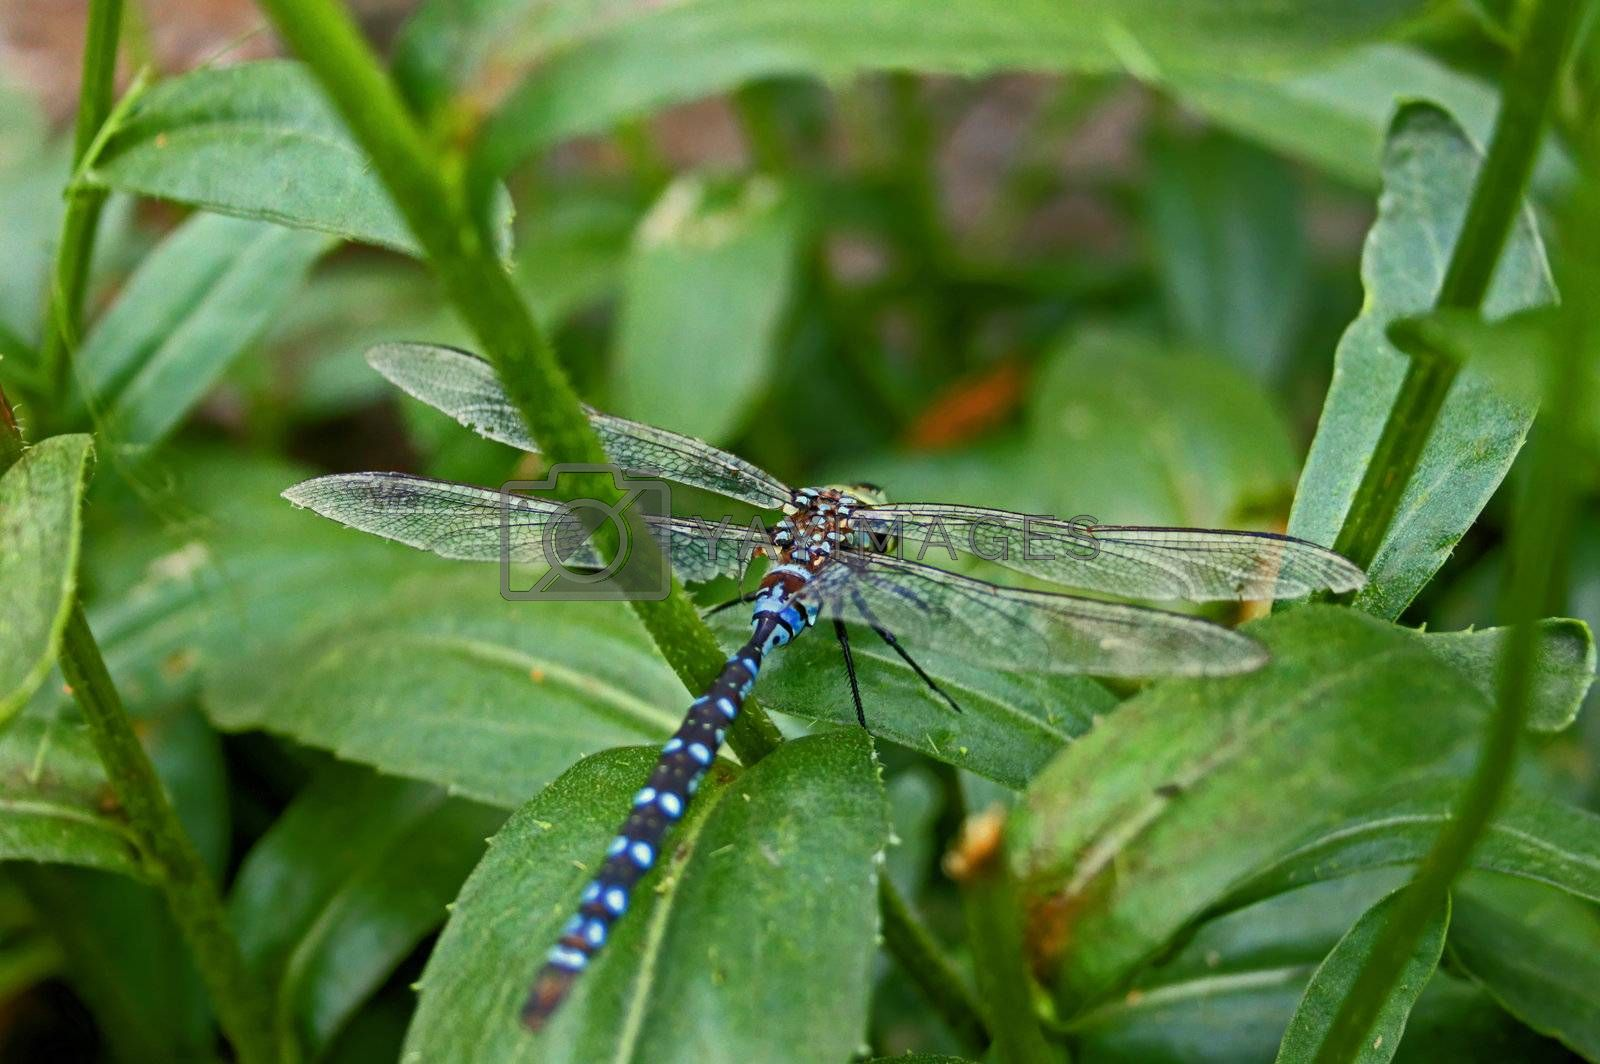 Close-up view of a dragonfly resting on a daisie